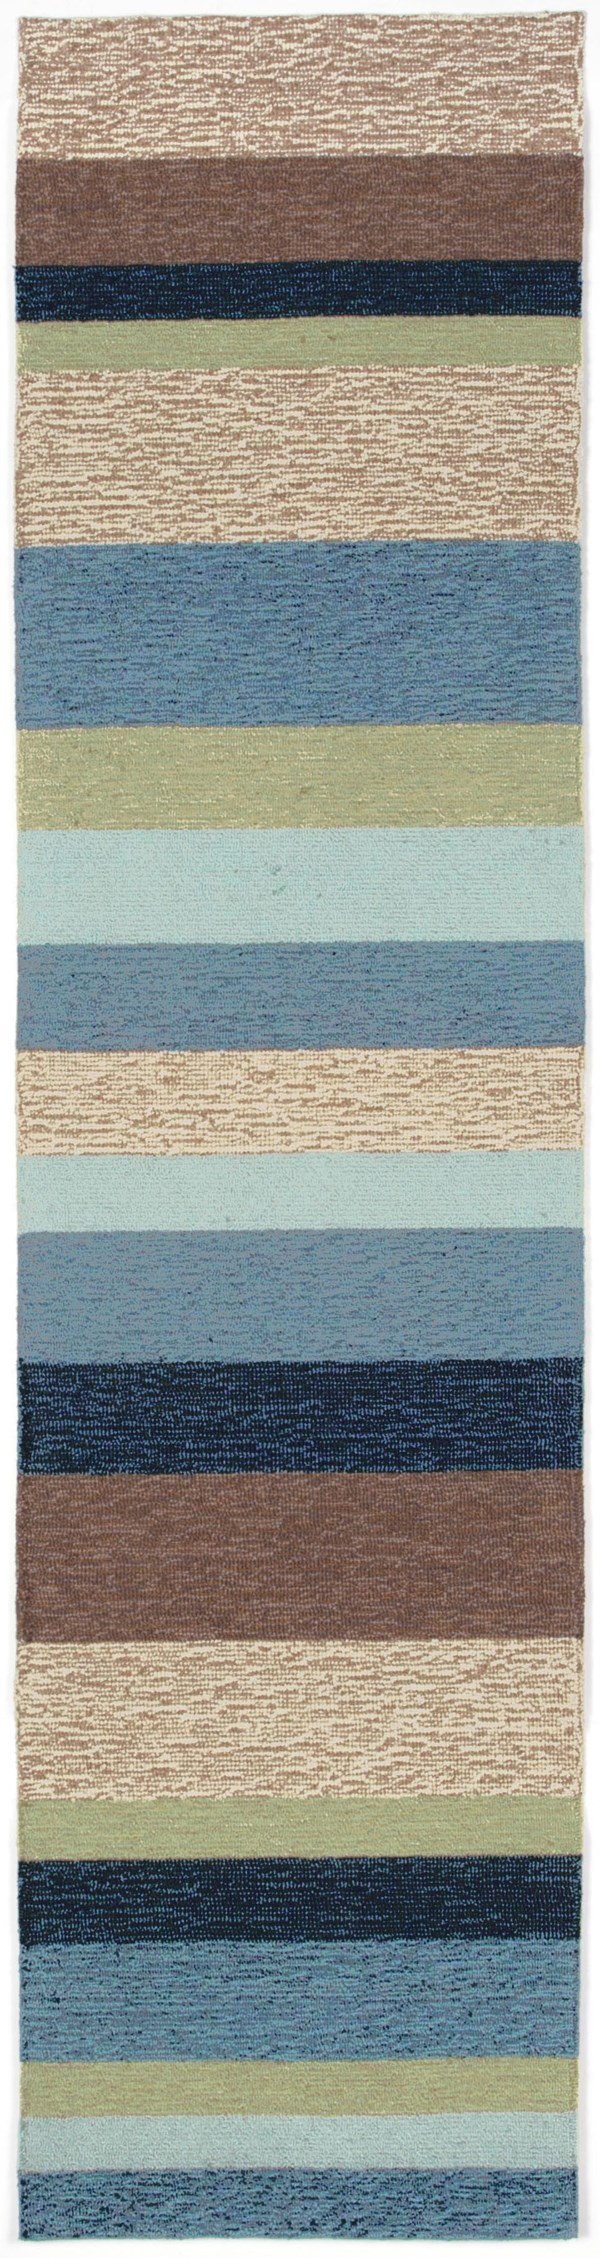 Denim (1900-33) Outdoor / Indoor Area Rug